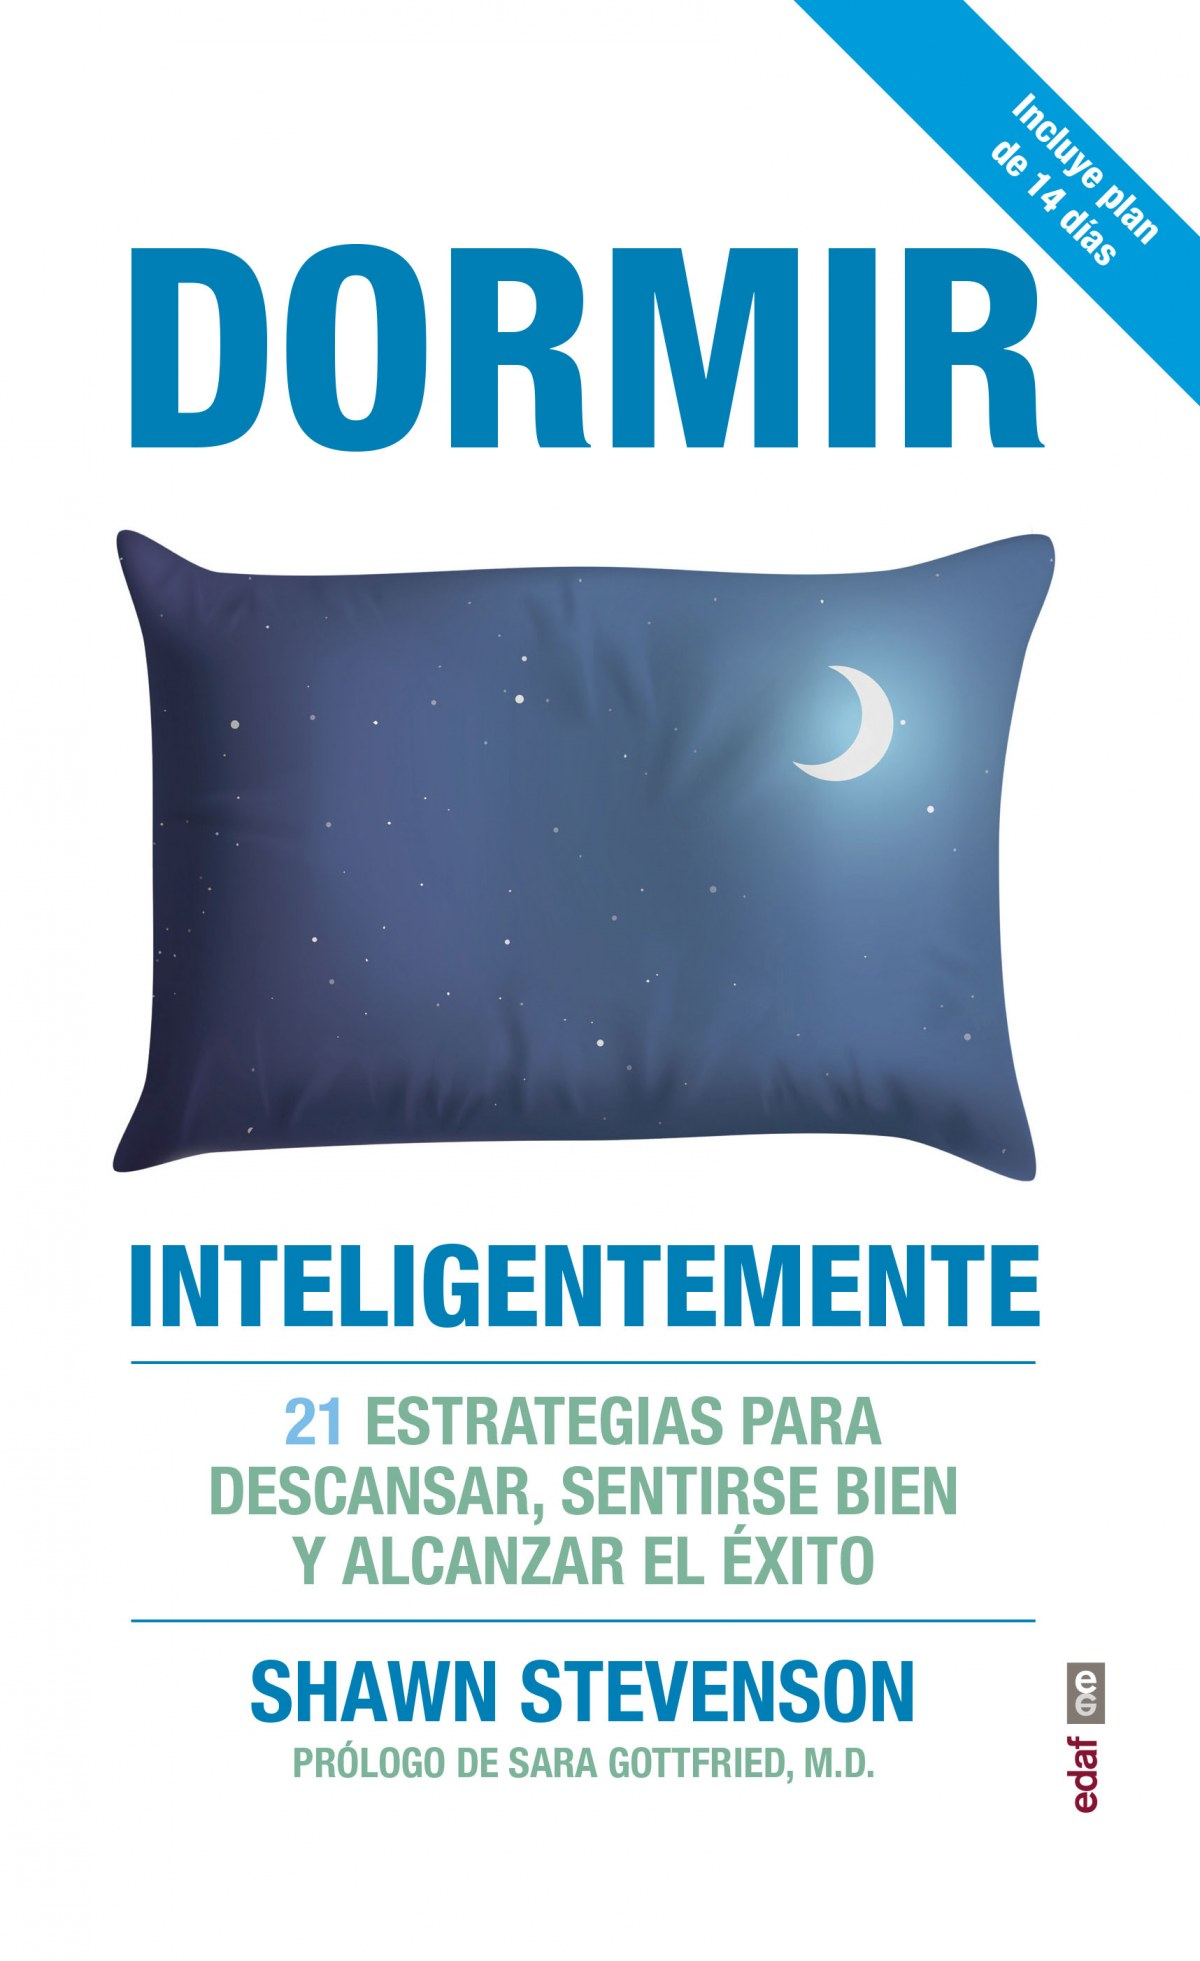 DORMIR INTELIGENTEMENTE